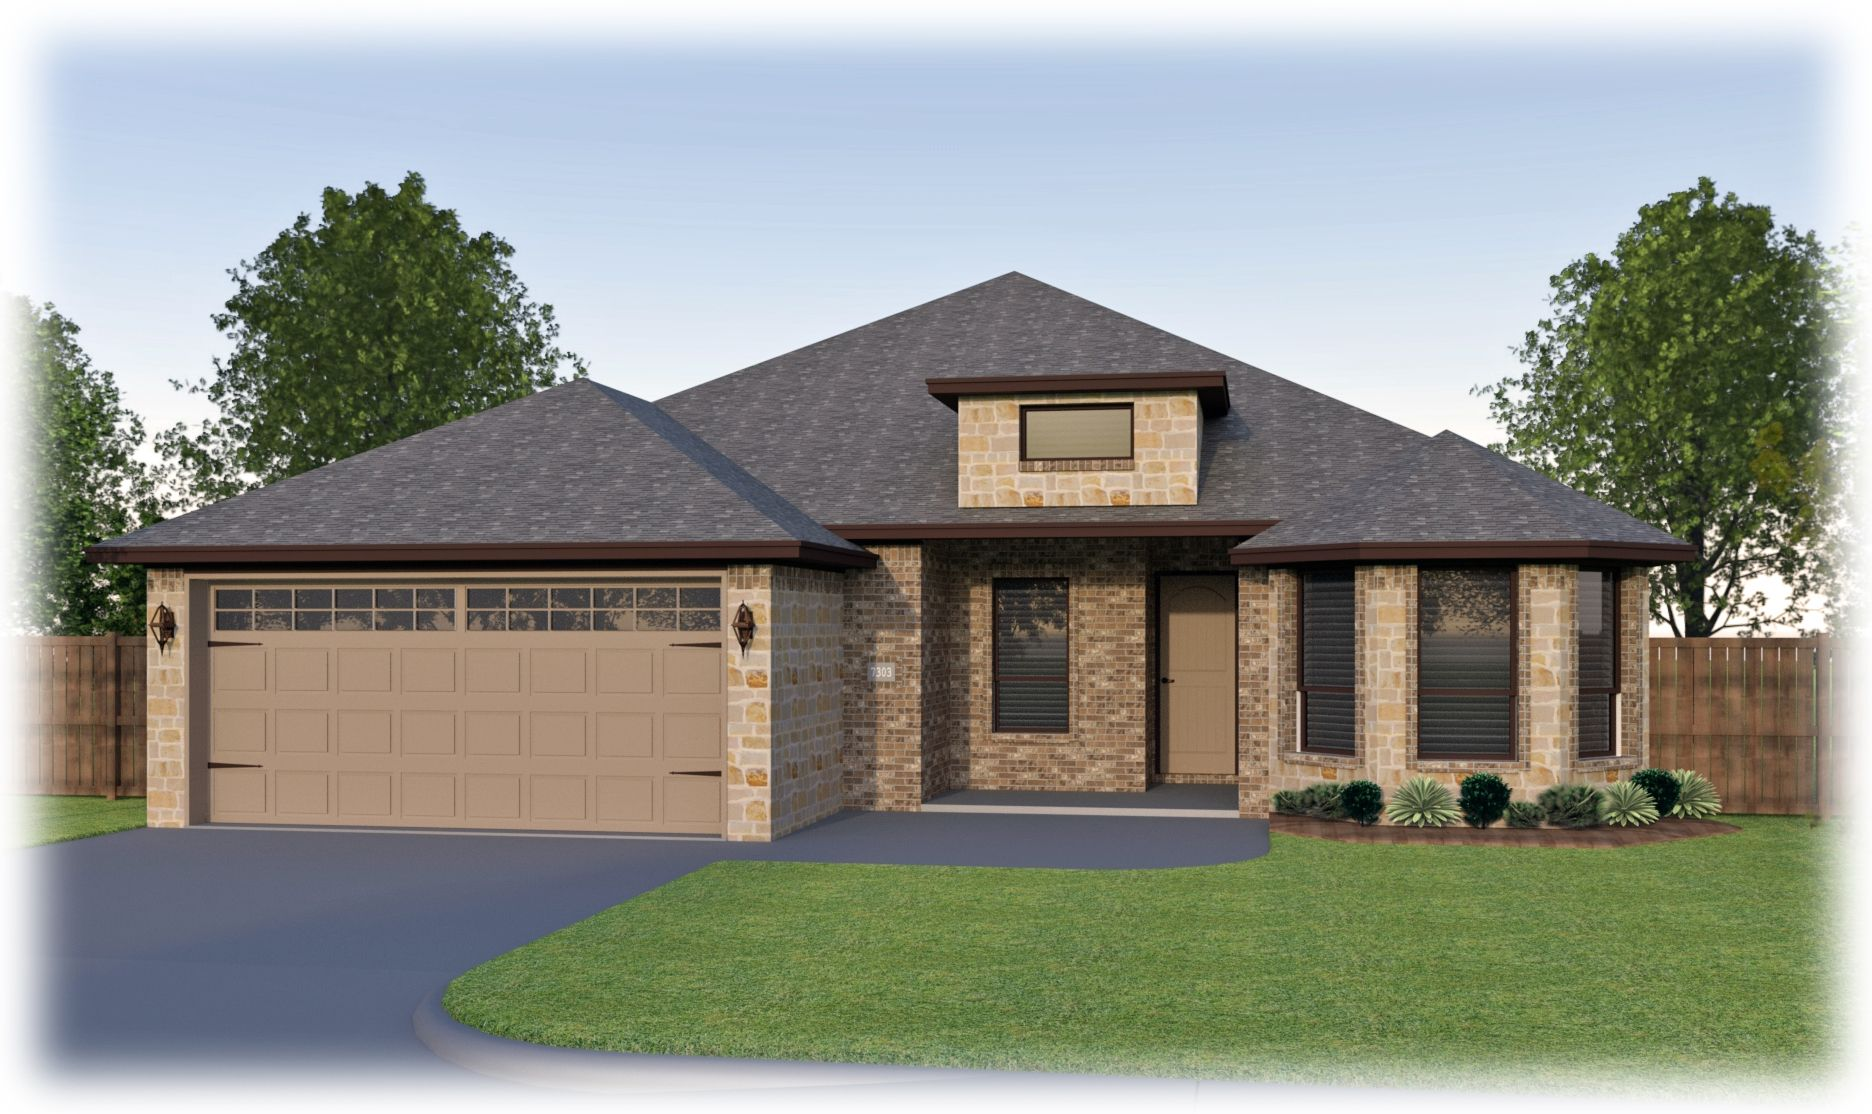 Erminia Stone Elevation A Uses Permian Color Brick Scheme D9 And South Texas Blend Acme Natural Stone Model Homes New Homes House Styles